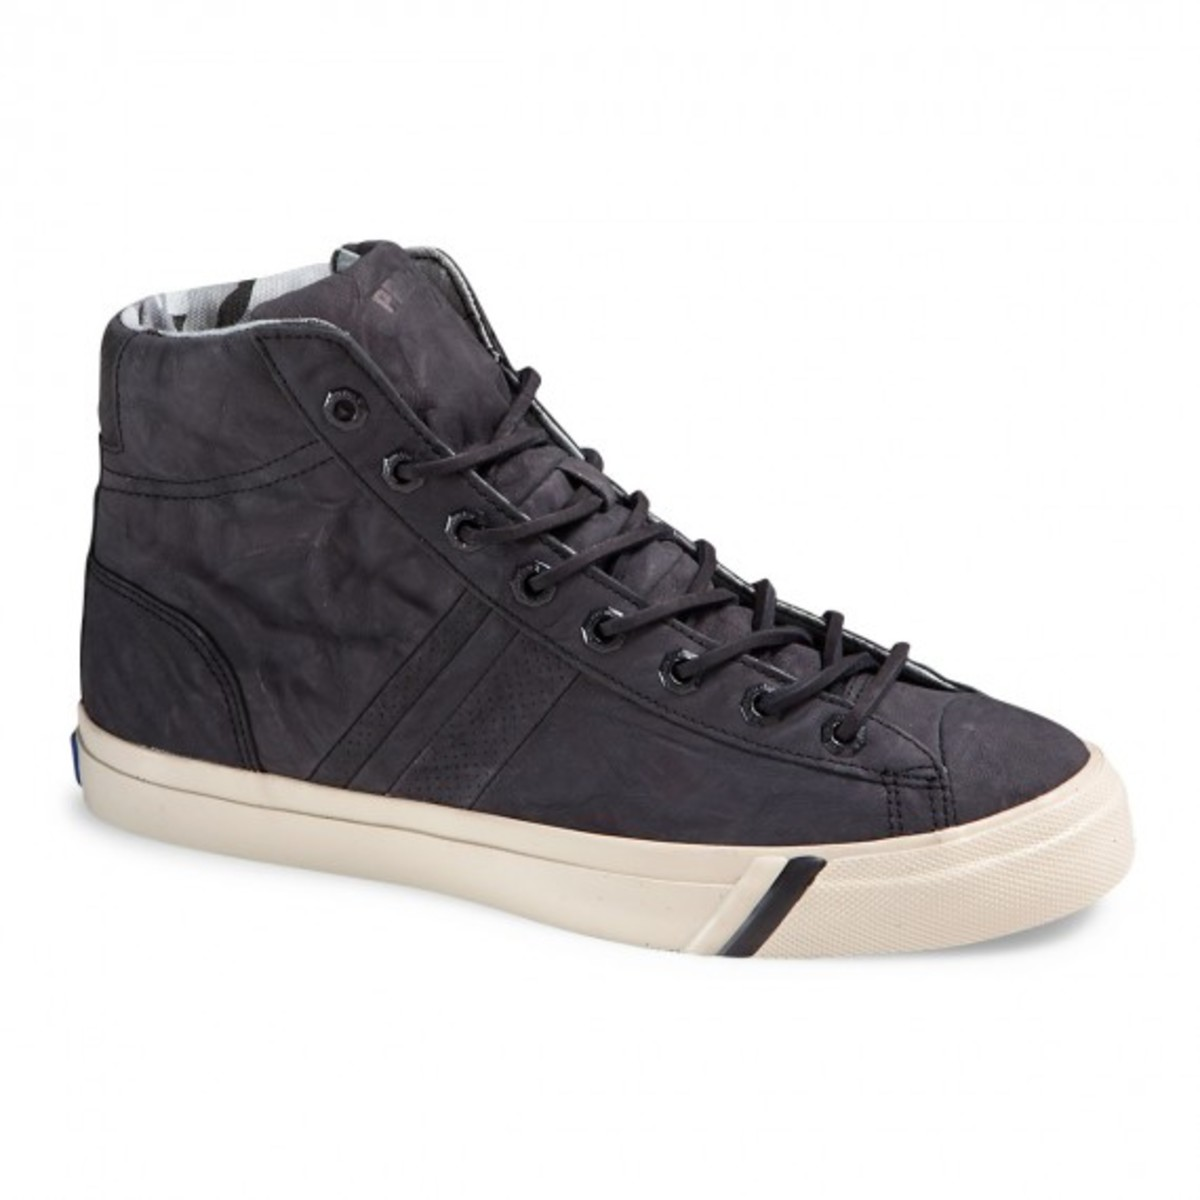 royal-plus-hi-nubuck-02